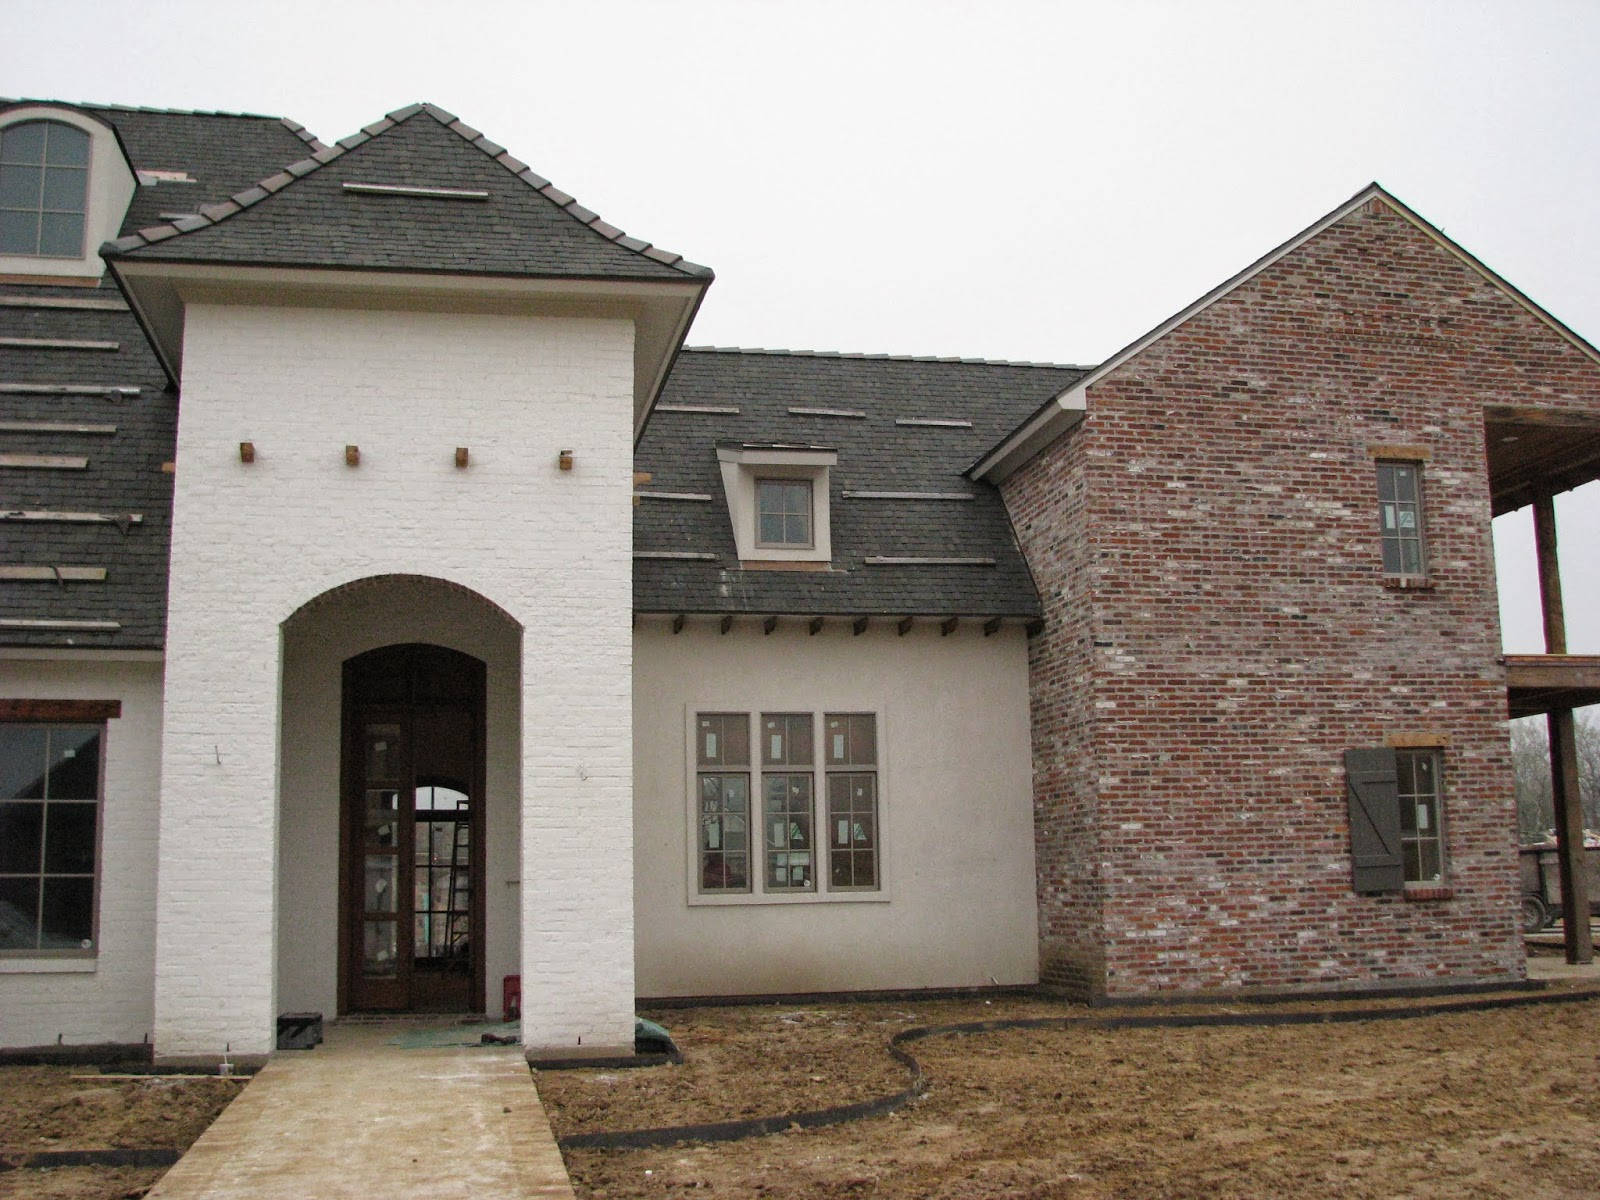 Custom Home Builders Lafayette La Of 2014 Lafayette Parade Of Homes House Under Construction